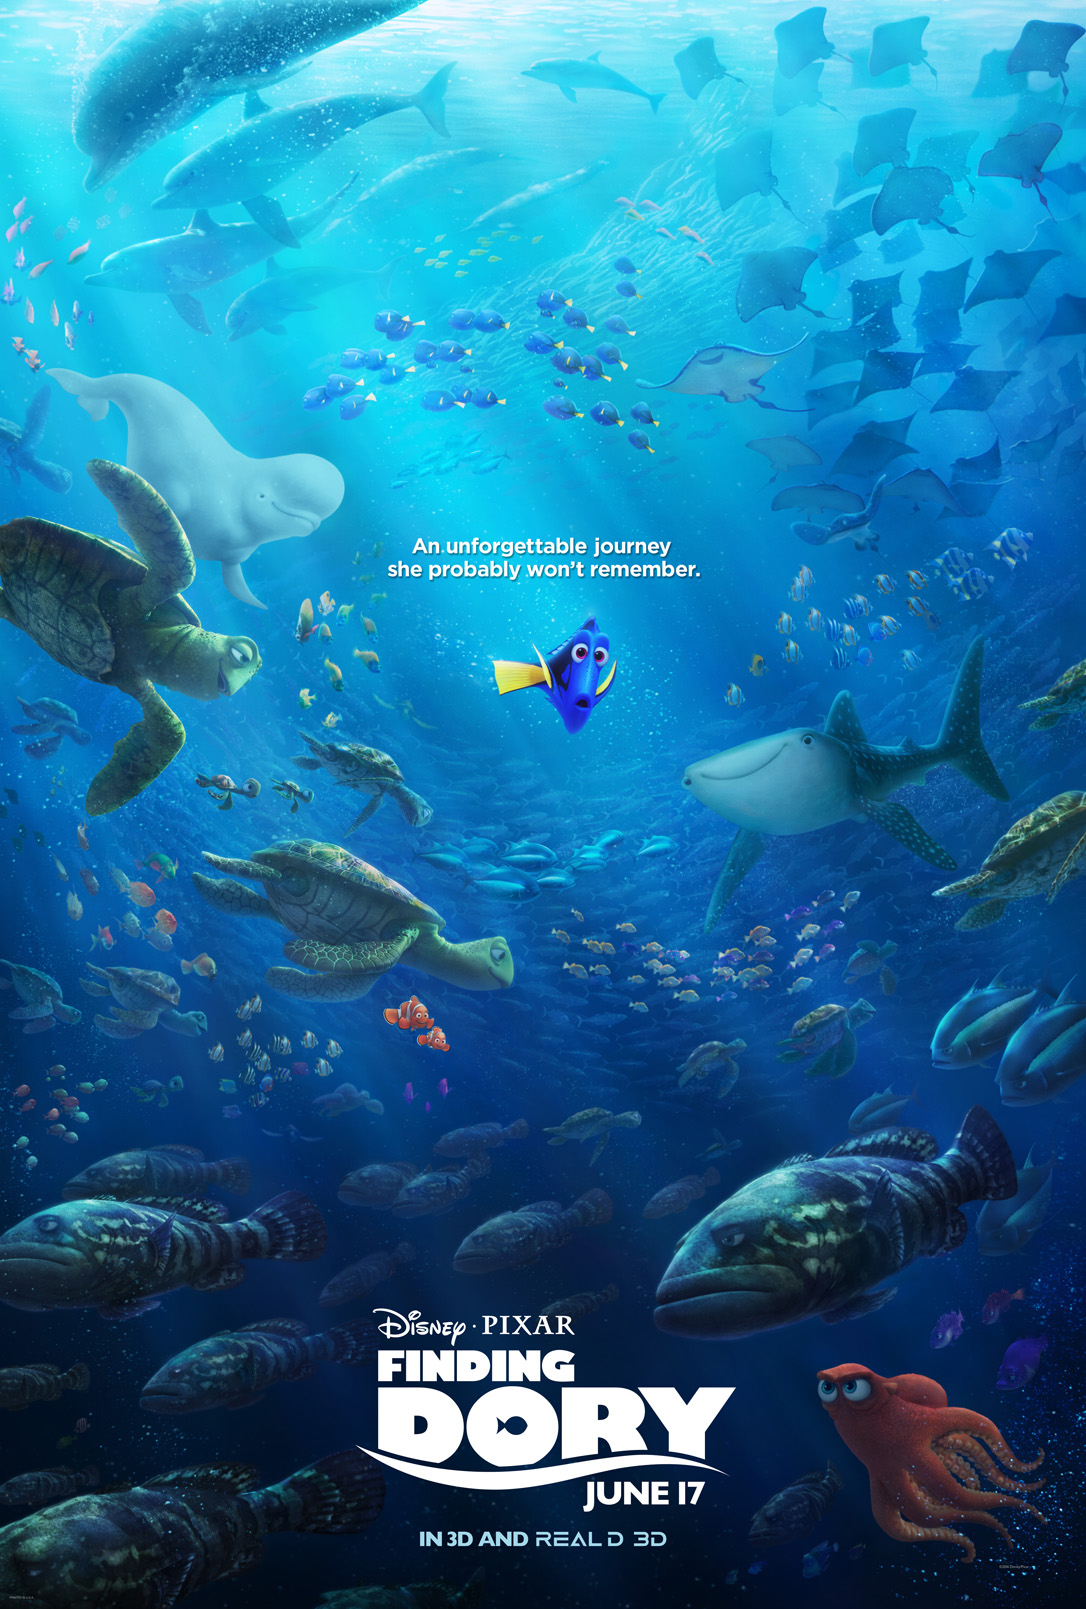 Finding Dory moreover Jack Darton additionally 492781 also Ford F 350 Super Duty likewise Lamborghini Diamante 2023 Thomas Granjard Concept. on jack up cars car wallpapers